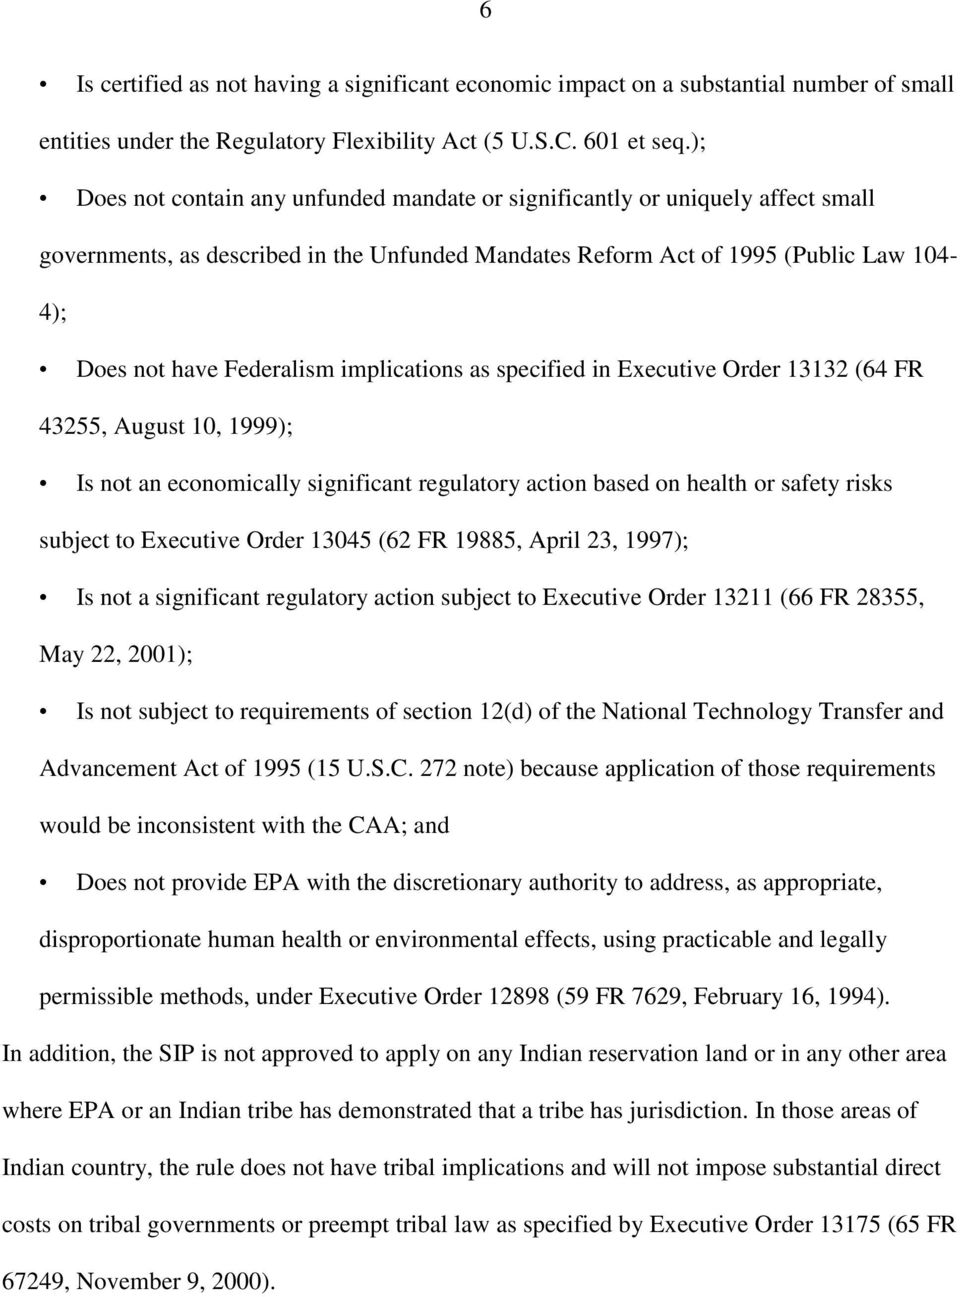 implications as specified in Executive Order 13132 (64 FR 43255, August 10, 1999); Is not an economically significant regulatory action based on health or safety risks subject to Executive Order